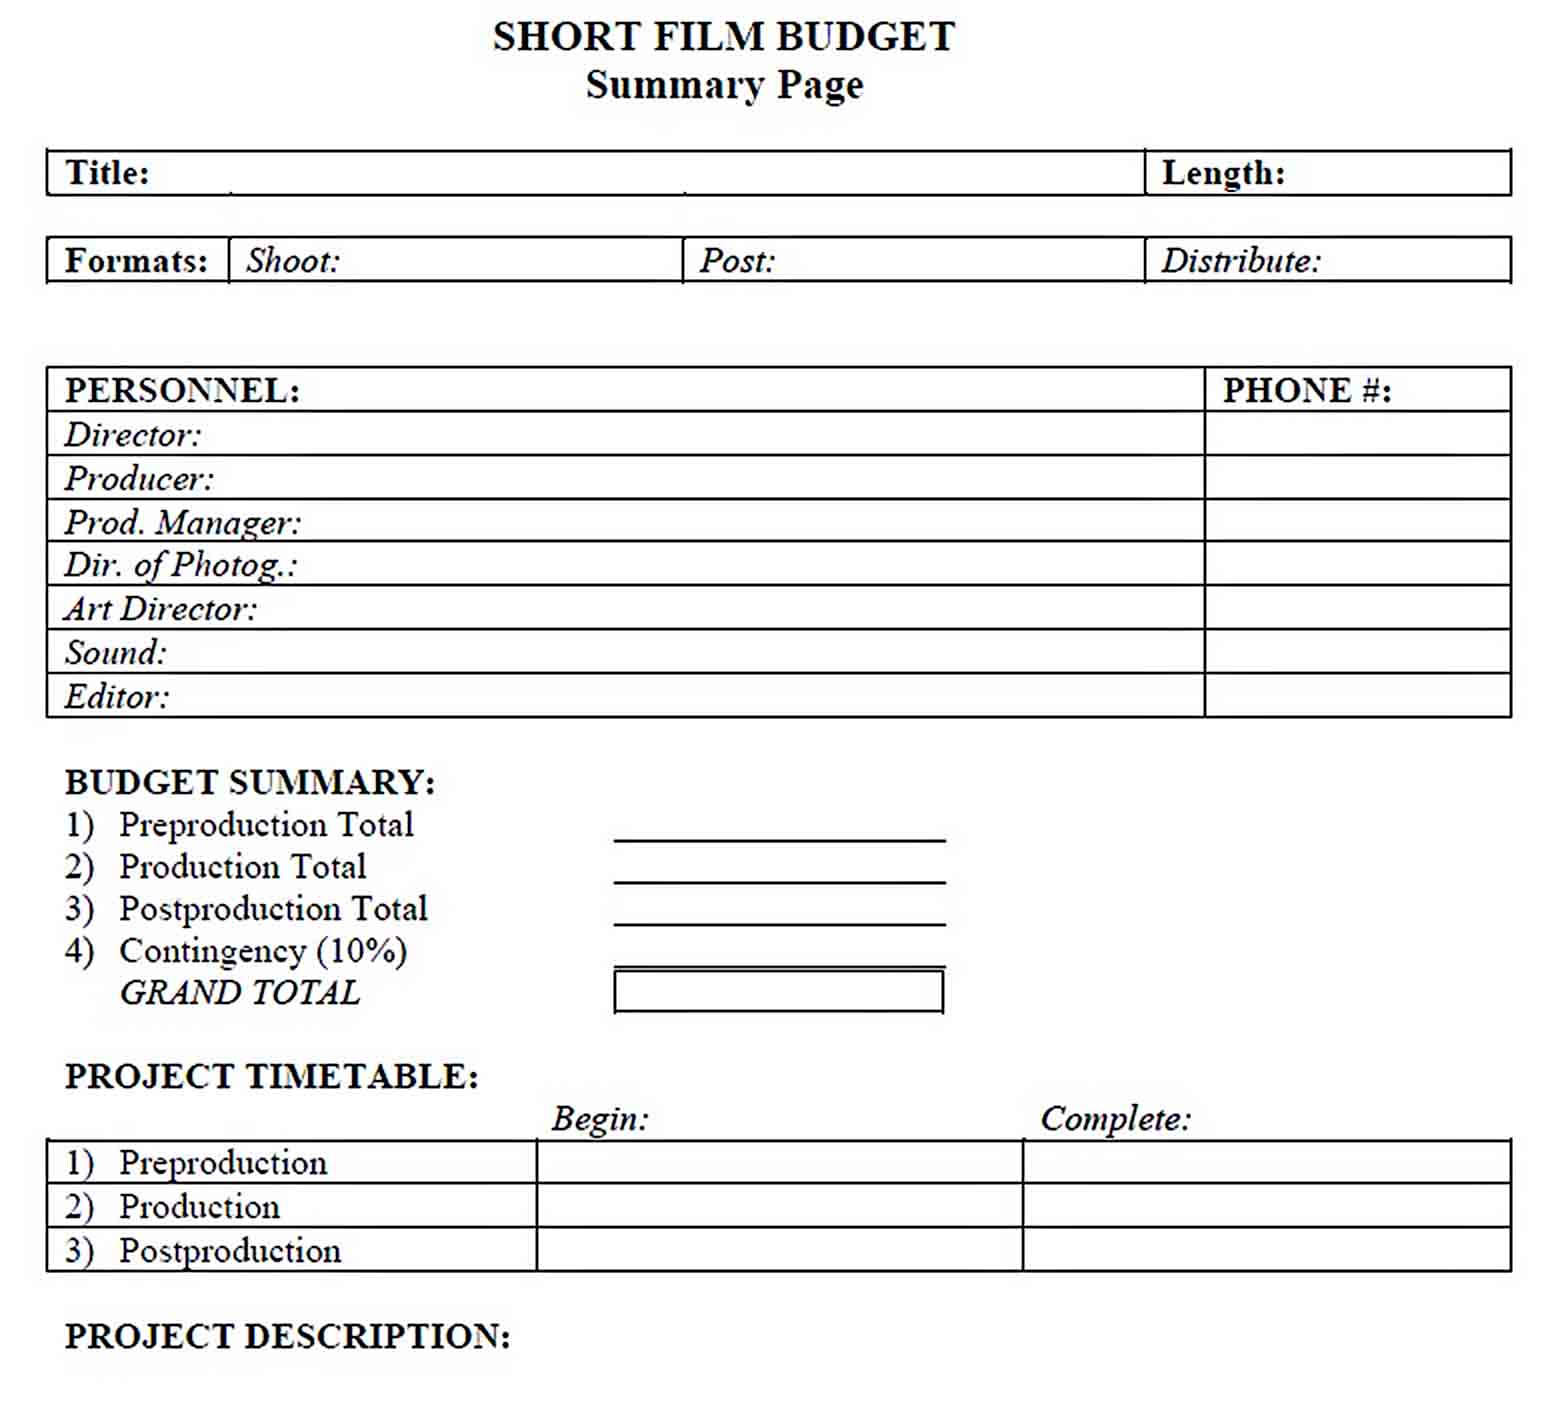 Short Film Budget Template sample